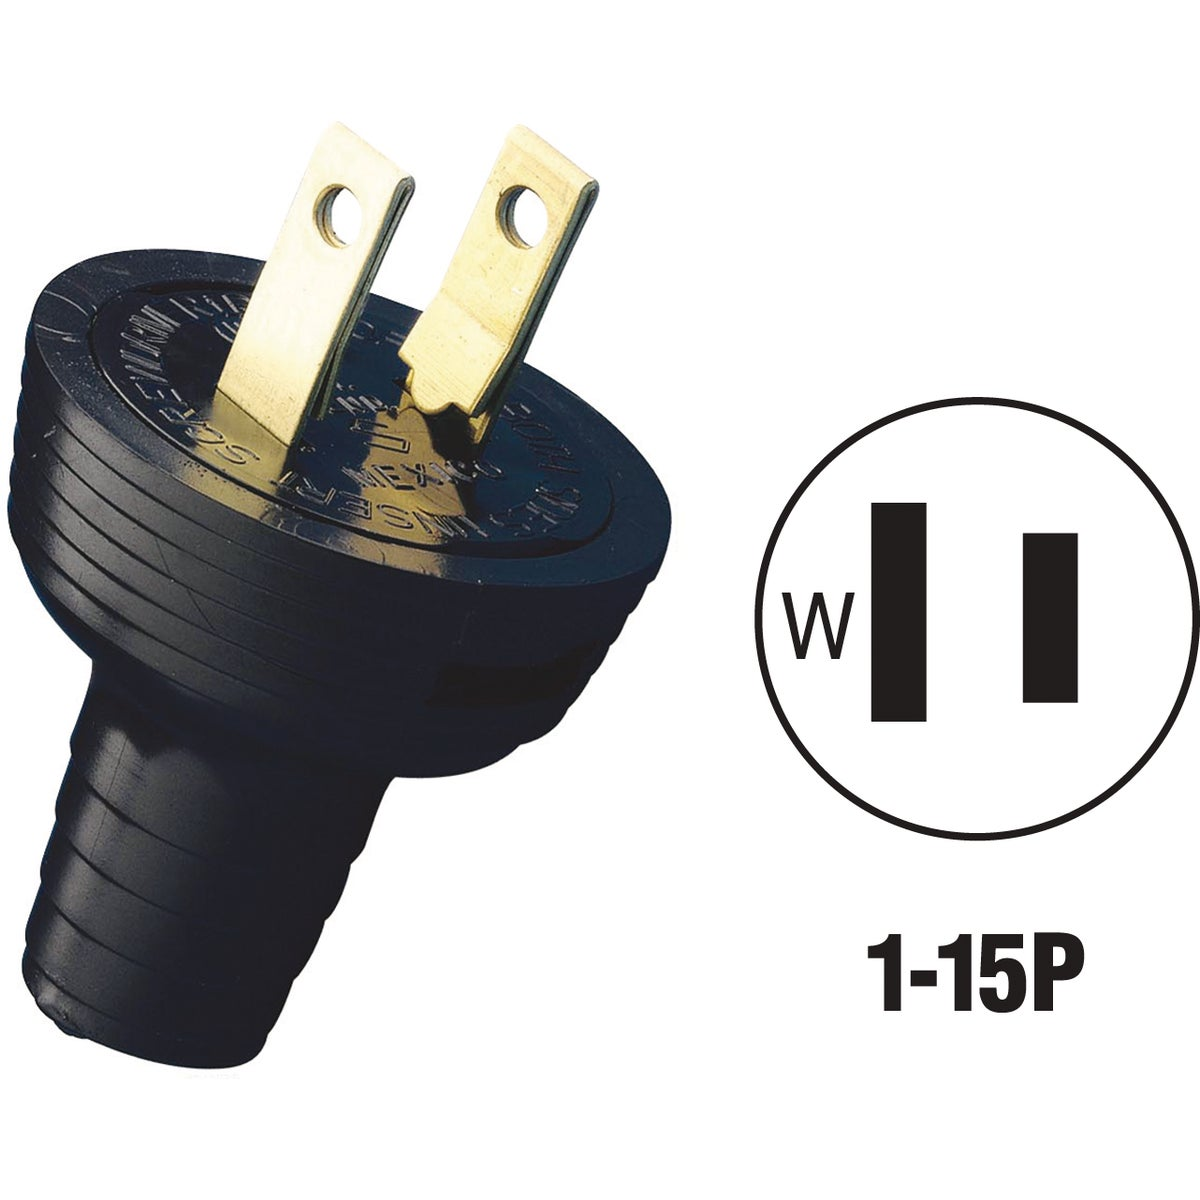 BLK CORD PLUG - 48642 by Leviton Mfg Co